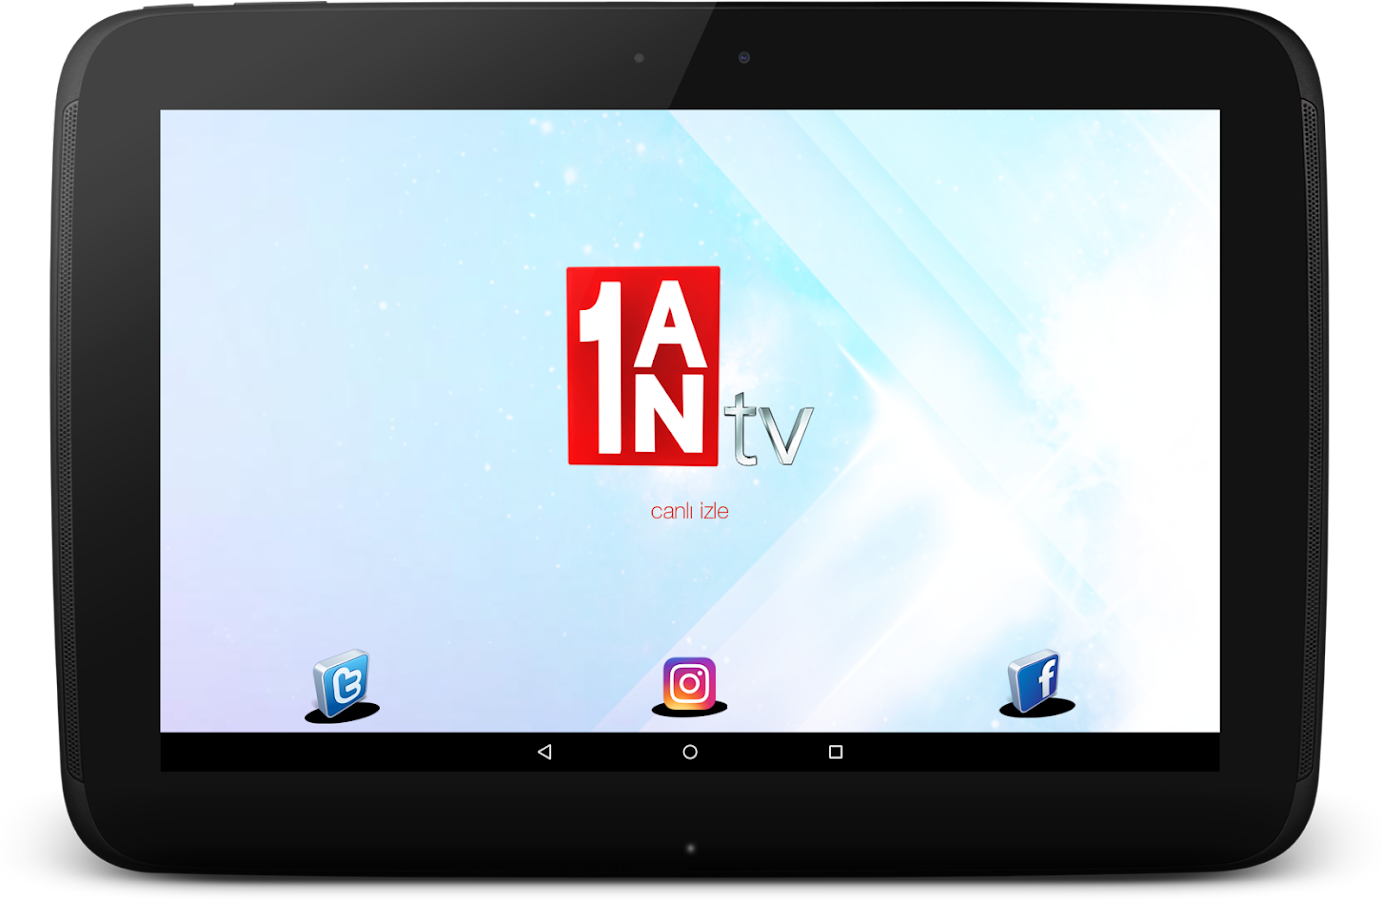 1AN TV- screenshot